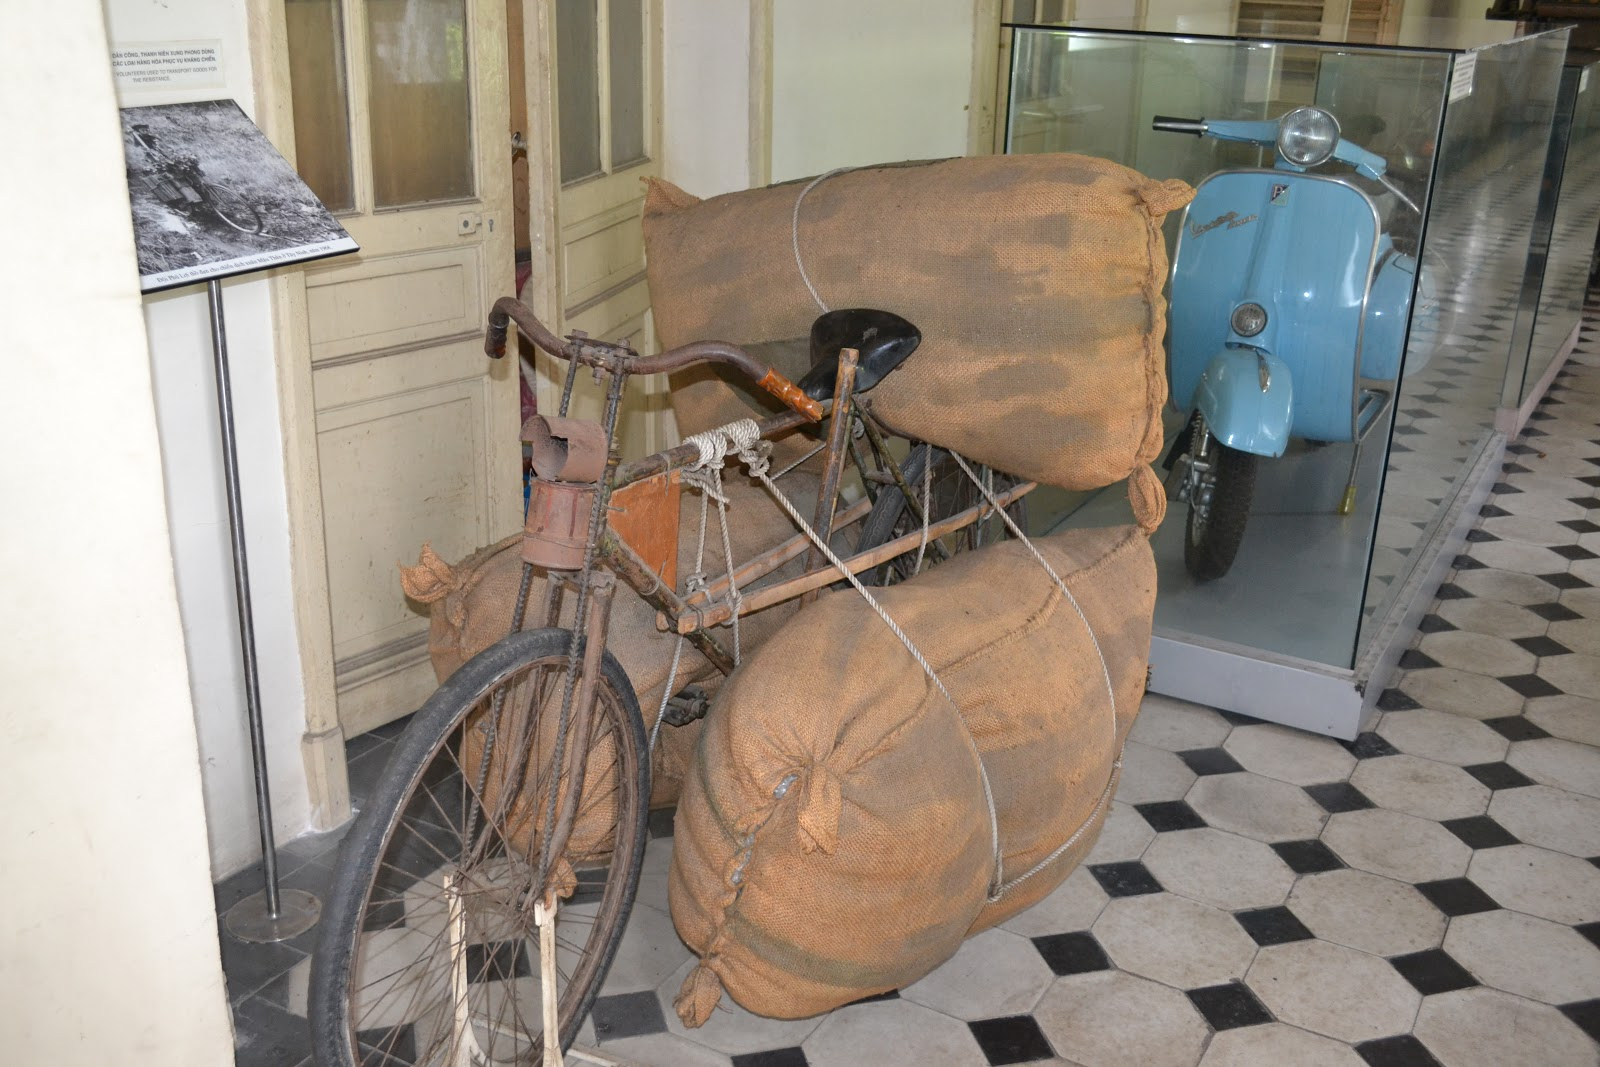 Cycles used for supply during Vietnam war